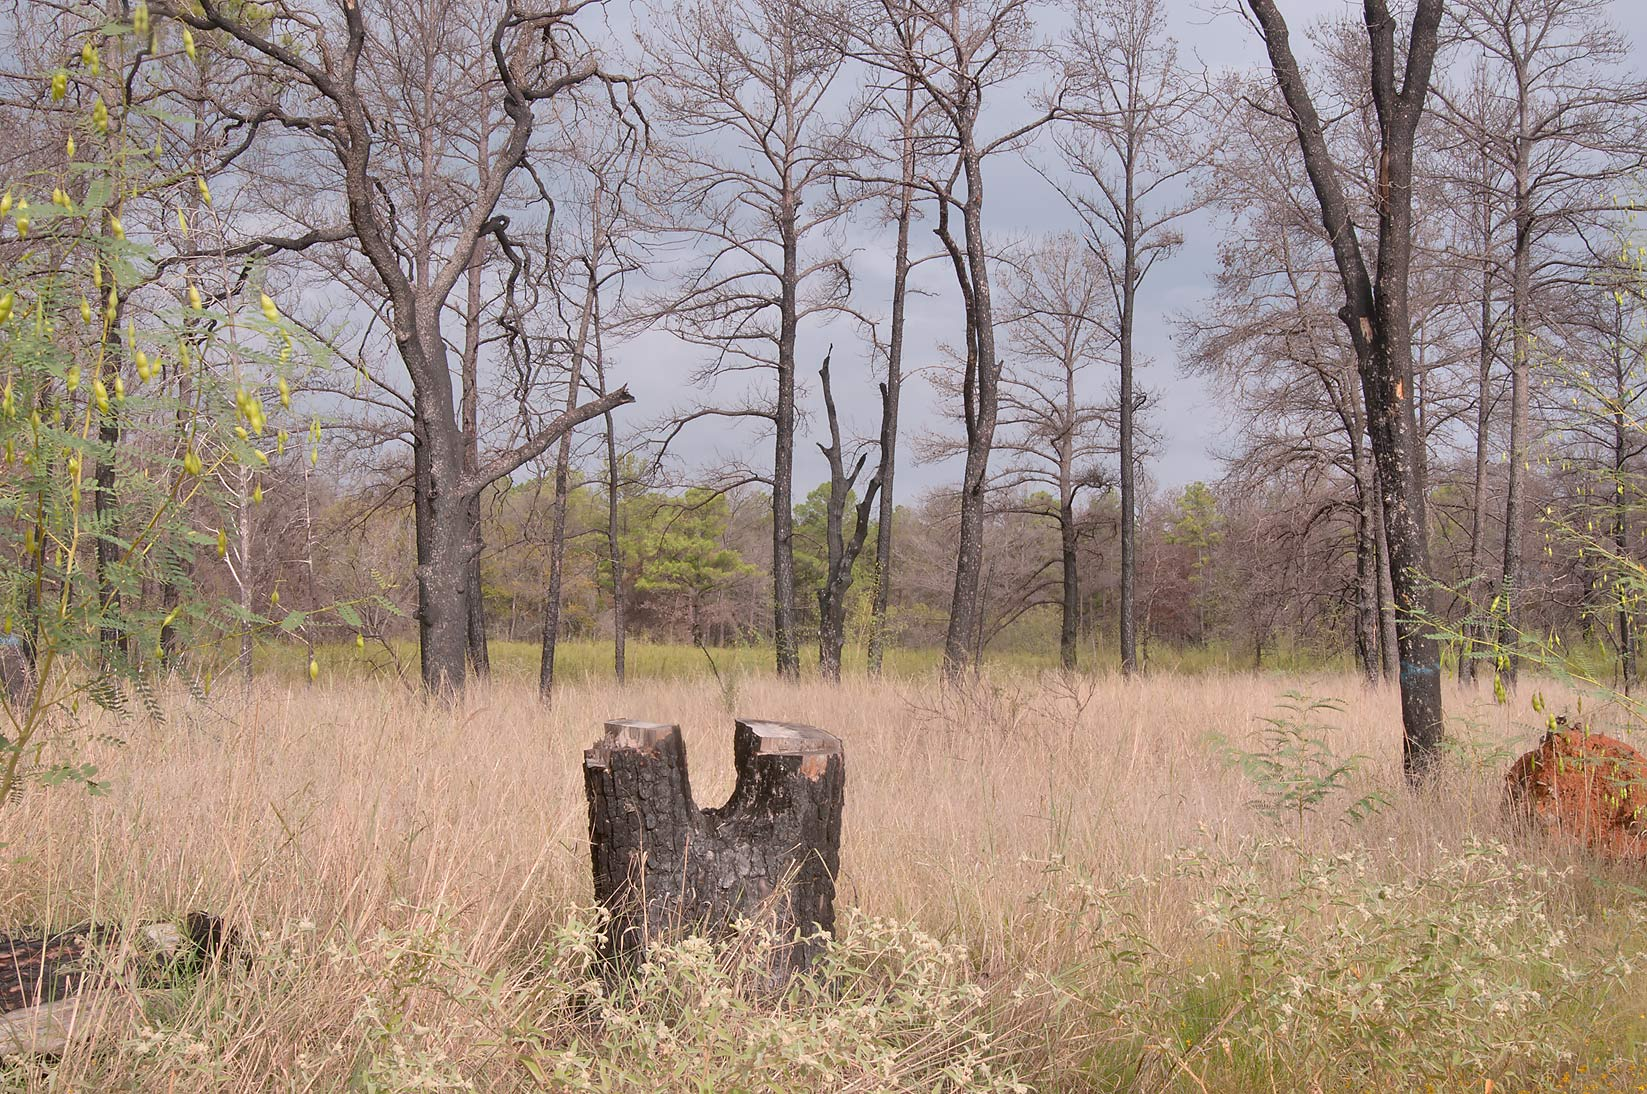 Cut tree in Bastrop State Park. Bastrop, Texas